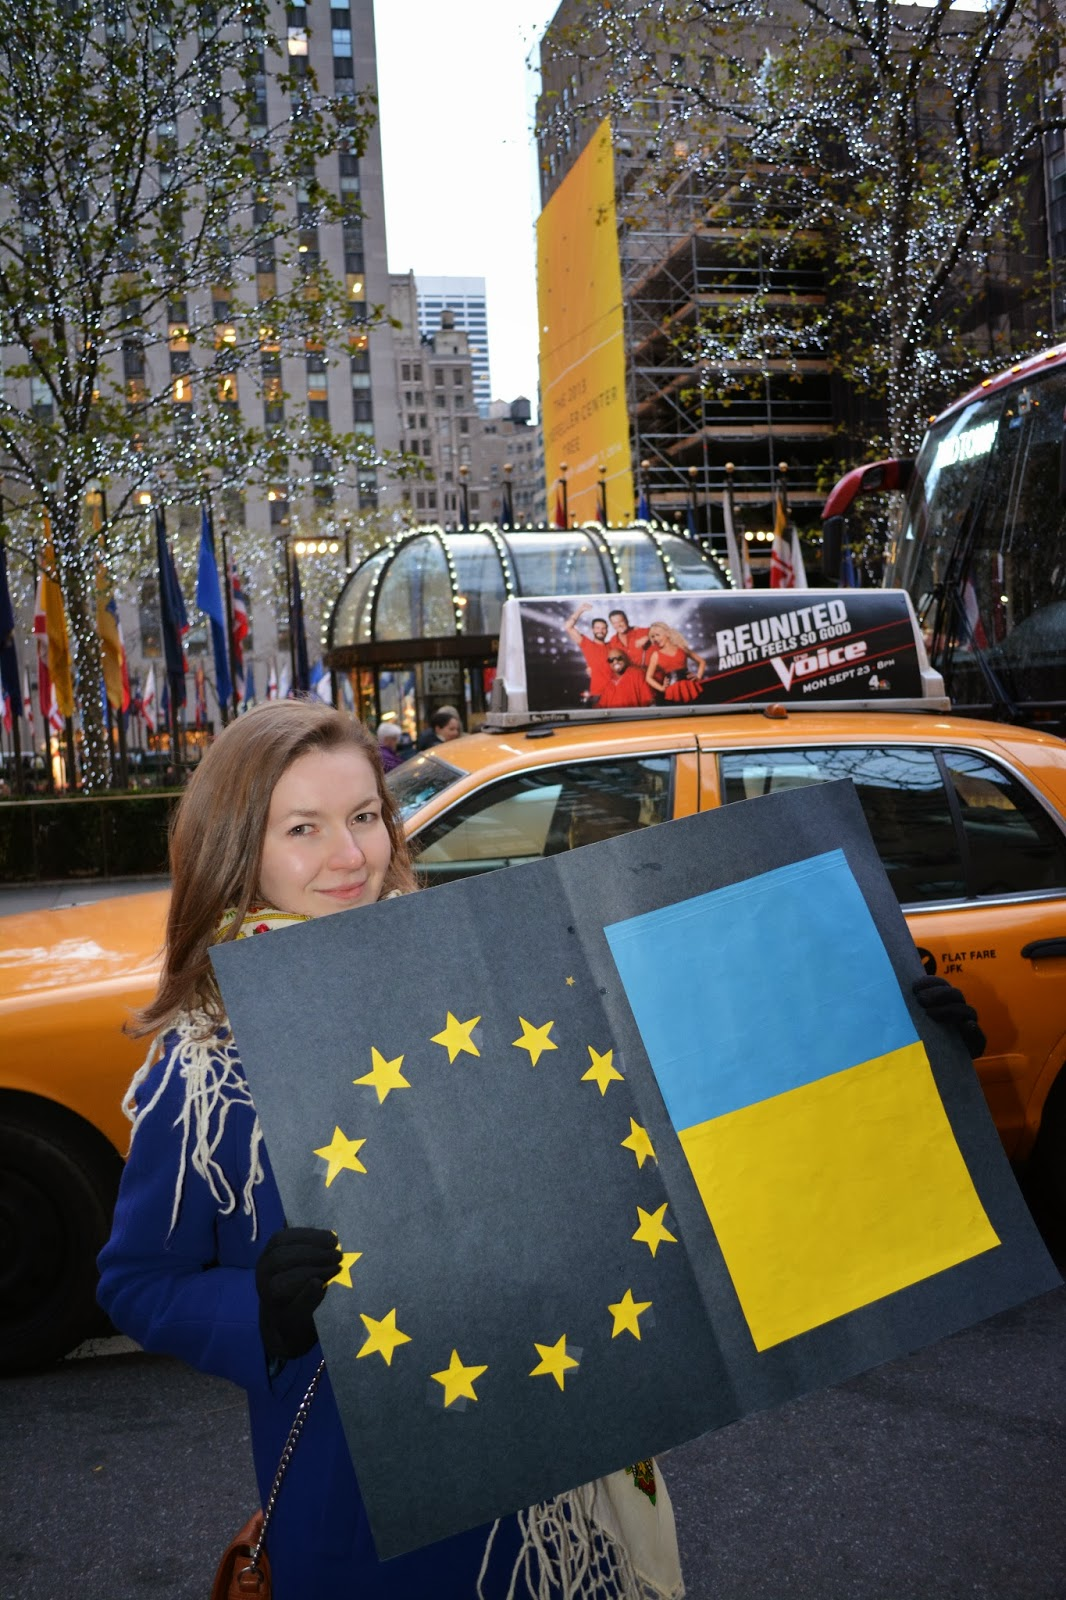 euromaydan, euromaidan, new york city for euromaydan, new york city supports ukraine, ukraine in eu